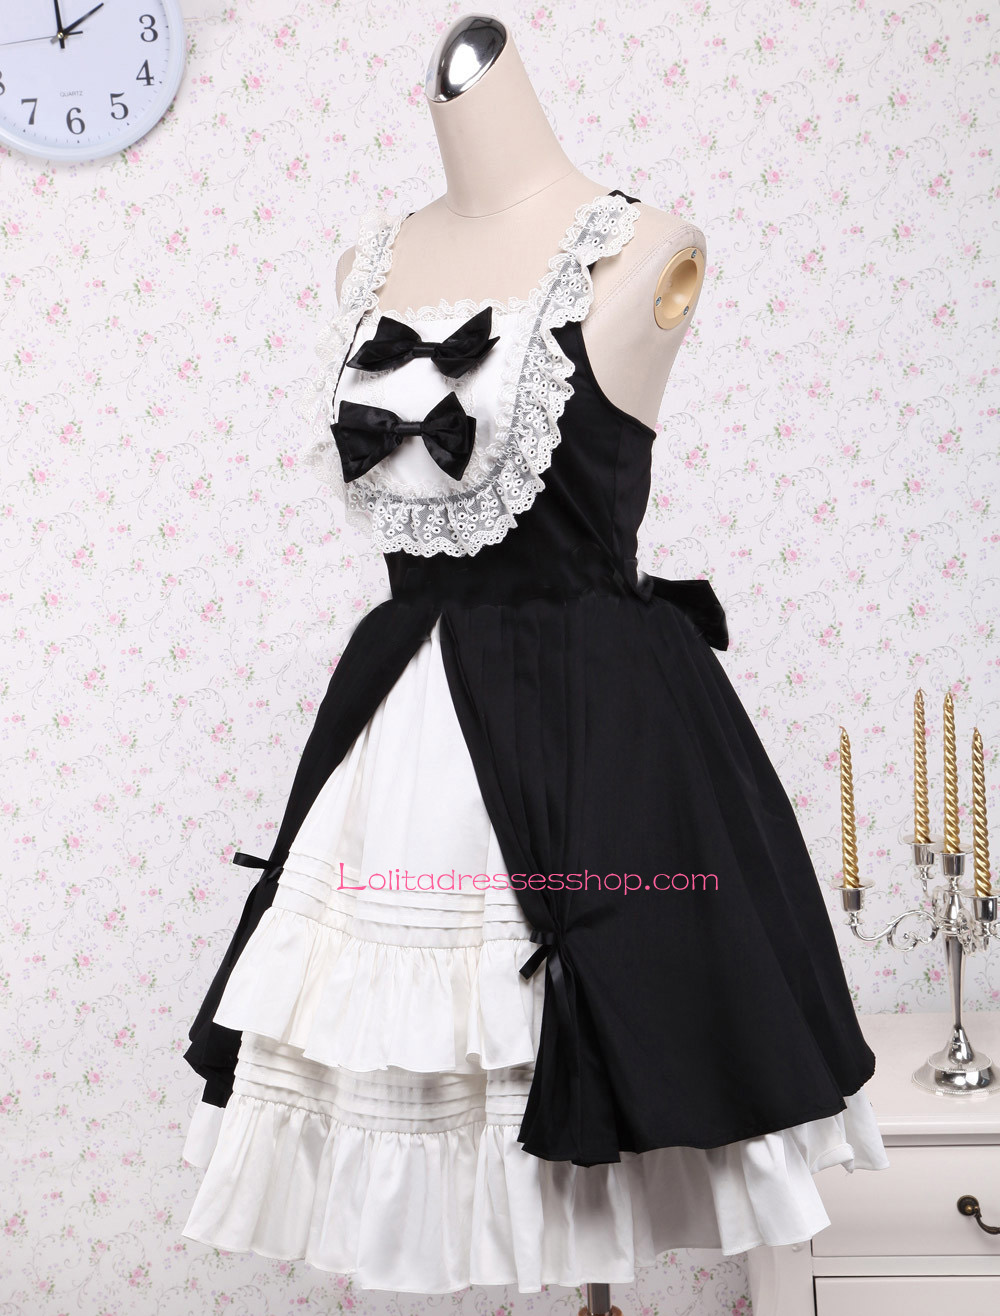 Black and White Straps Sleeveless Flouncing with Bow Gothic Lolita Dress